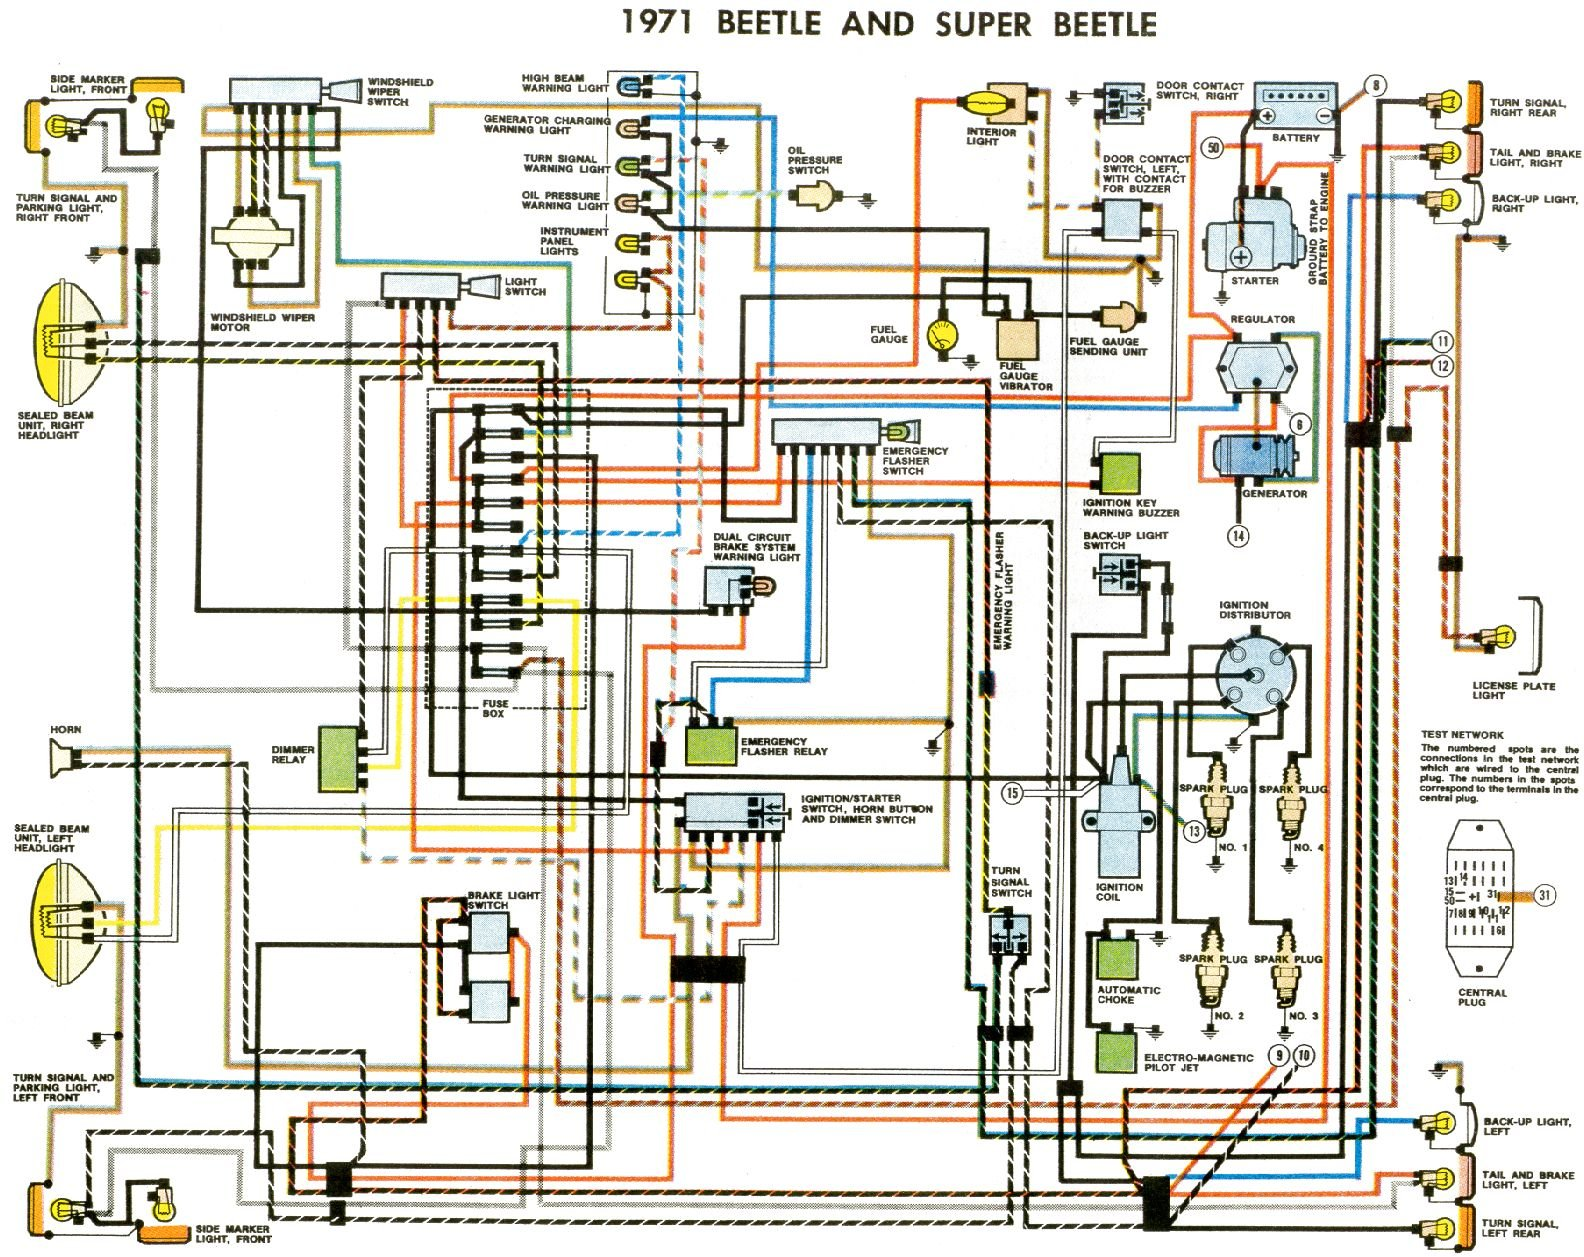 68 Vw Wiring Diagram Wiring Diagram Wiring Diagram For Vw Golf Mk5 Wiring Diagram For Volkswagen